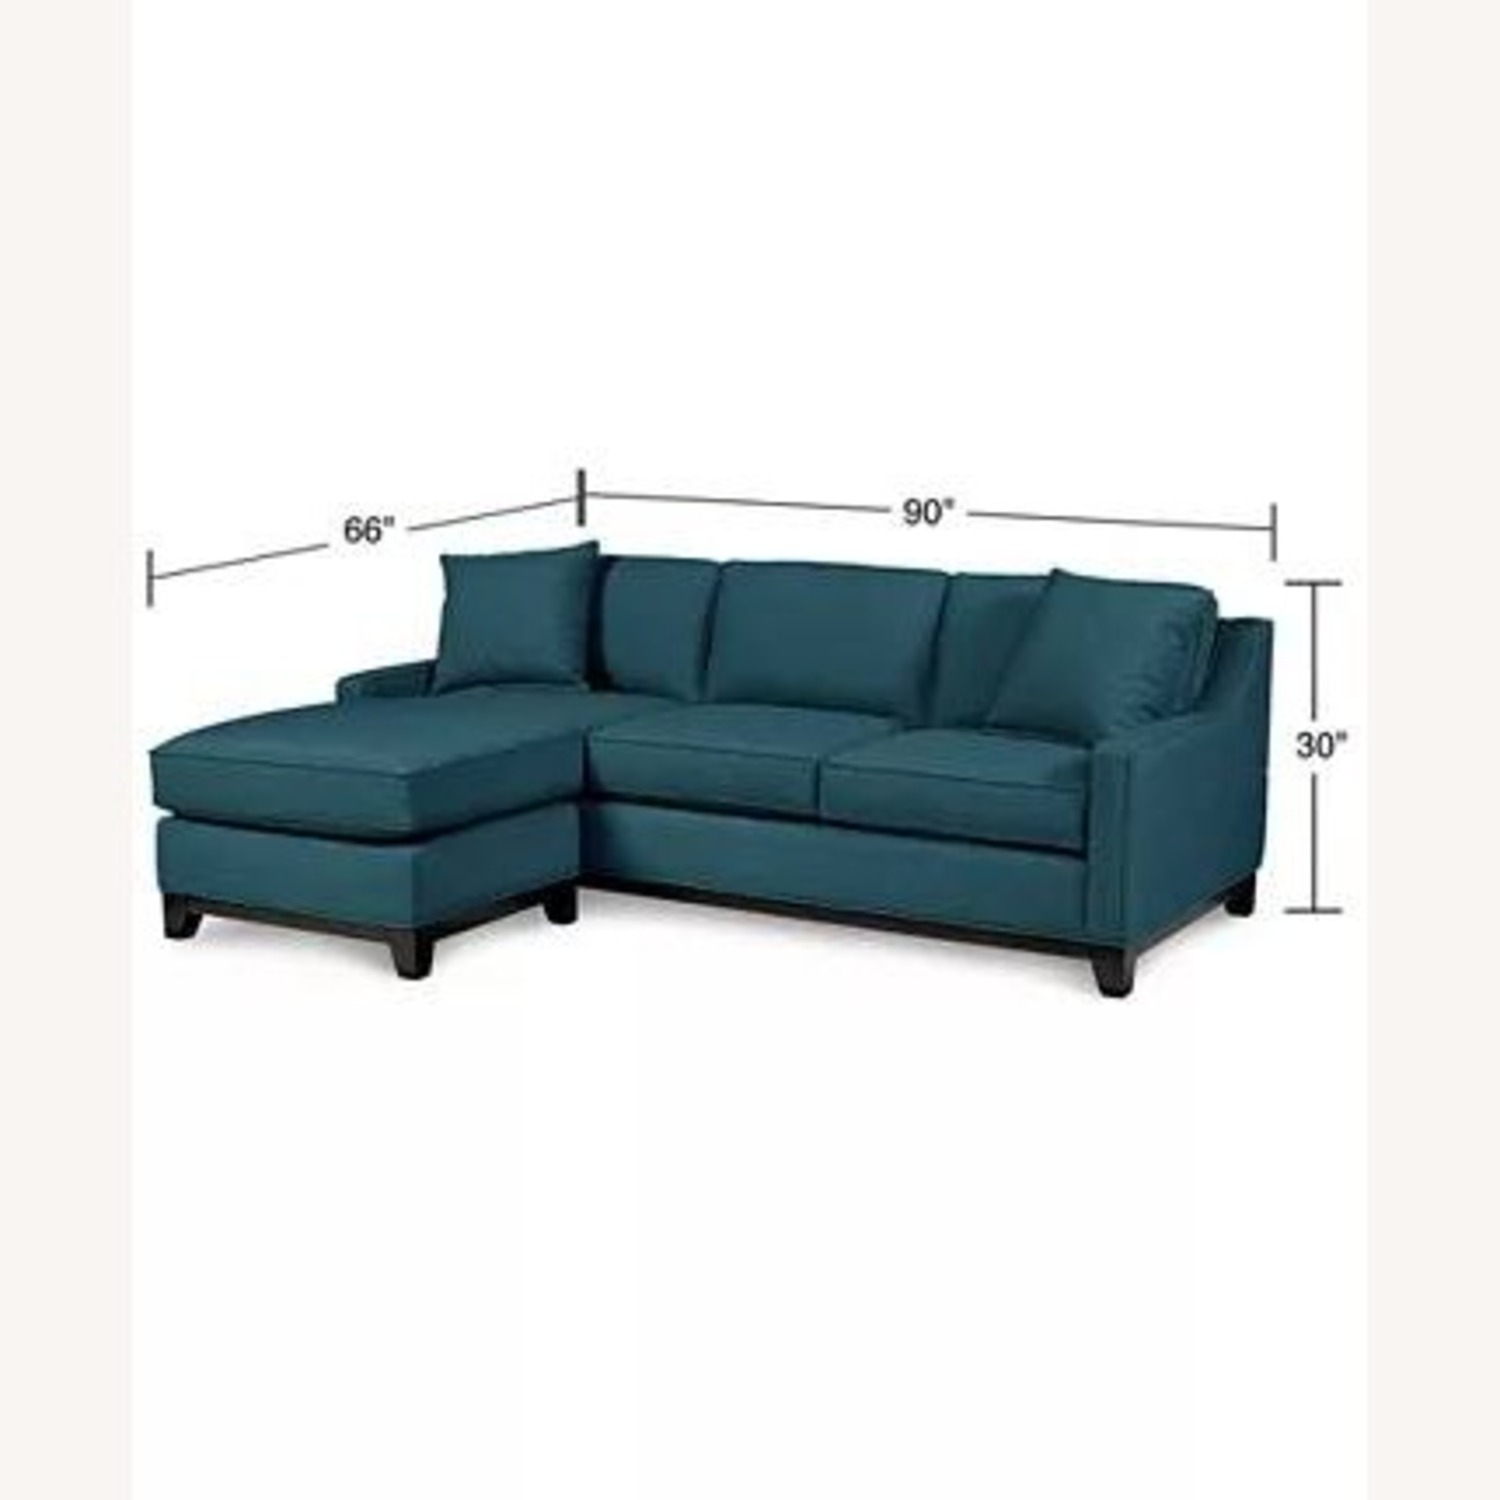 "Macy's Keegan 90"" 2-Piece Reversible Chaise Sectional - image-3"